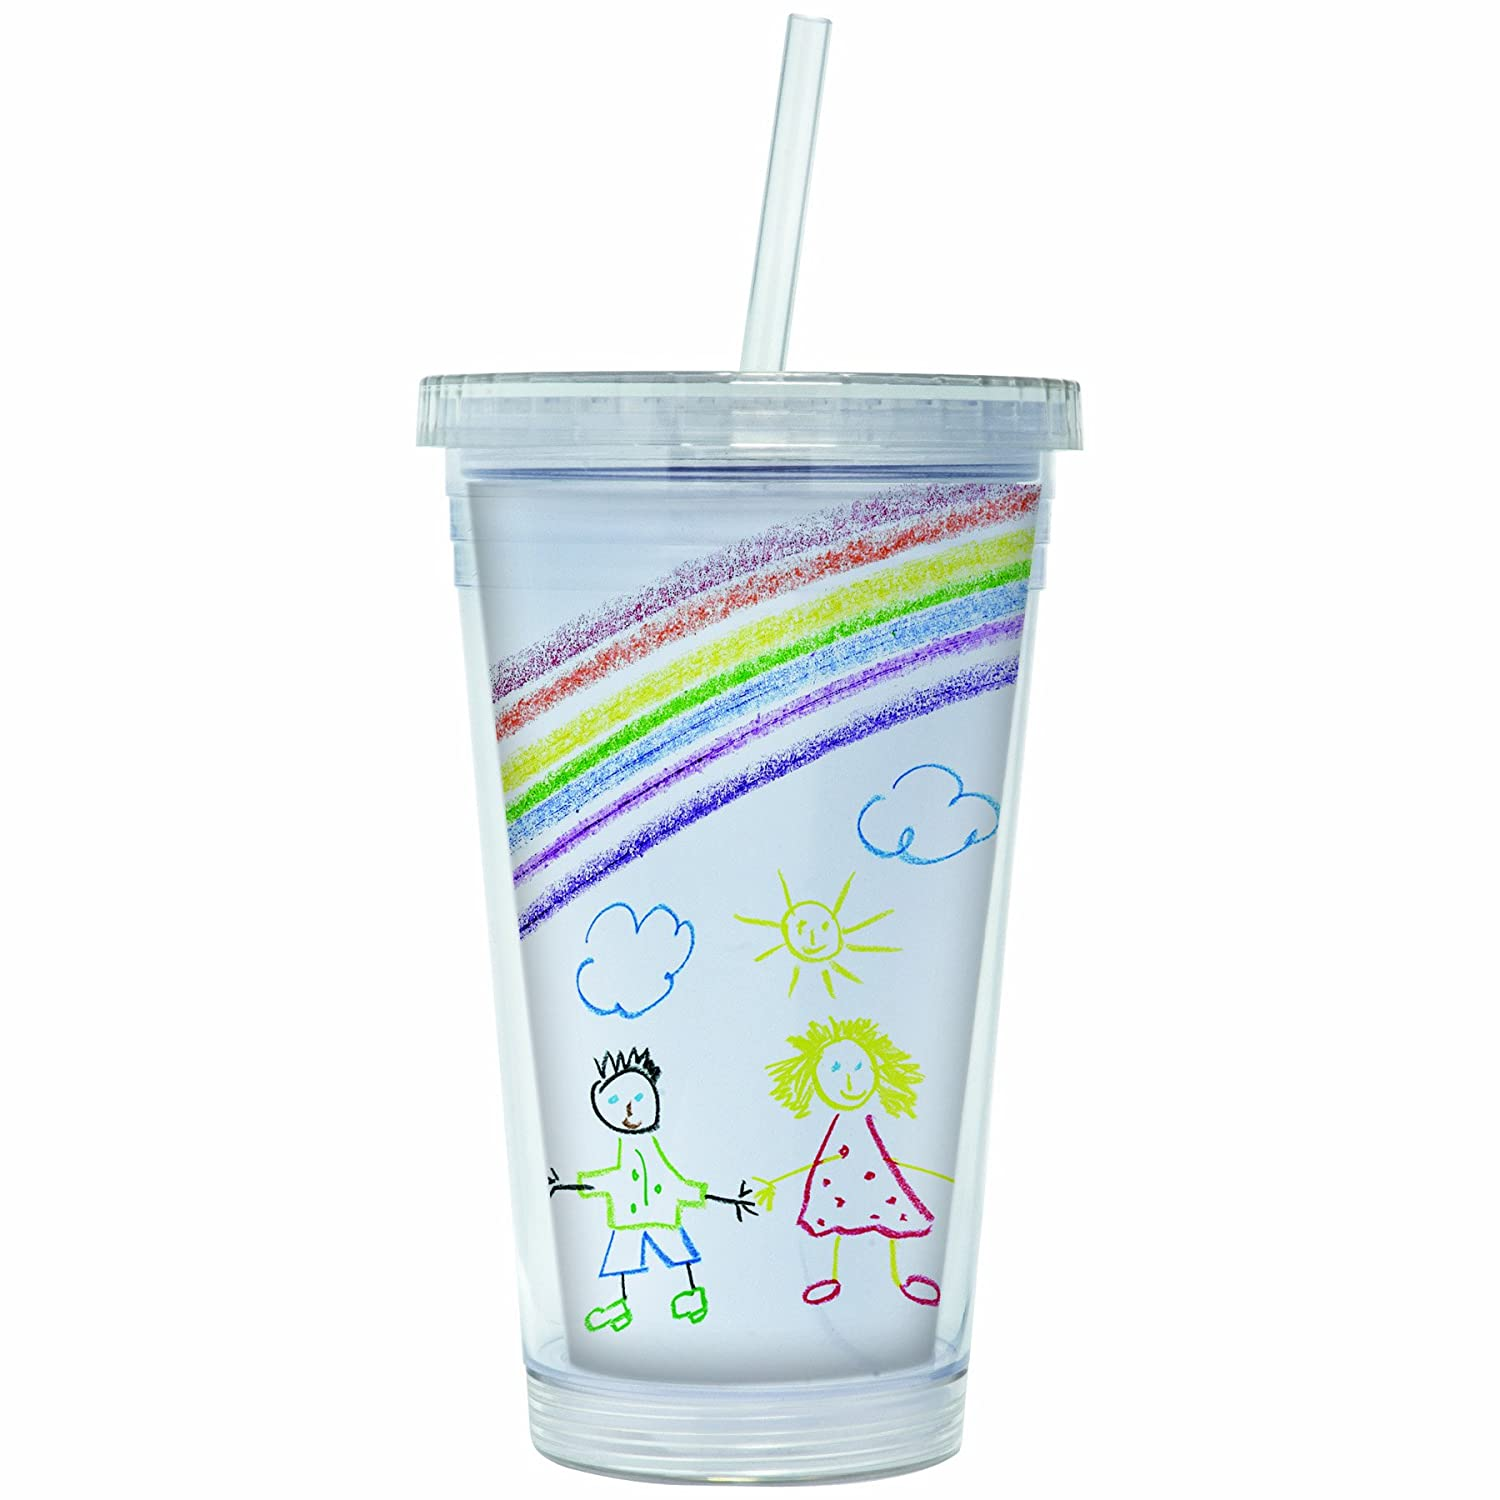 Fantastic 010 Editor Templates Small 10 Best Resume Templates Rectangular 2014 Excel Calendar Template 2014 School Calendar Template Youthful 2015 Excel Calendar Template Blue2015 Weekly Calendar Templates Amazon.com | Photo Acrylic Tumbler With Straw: Make Your Own ..